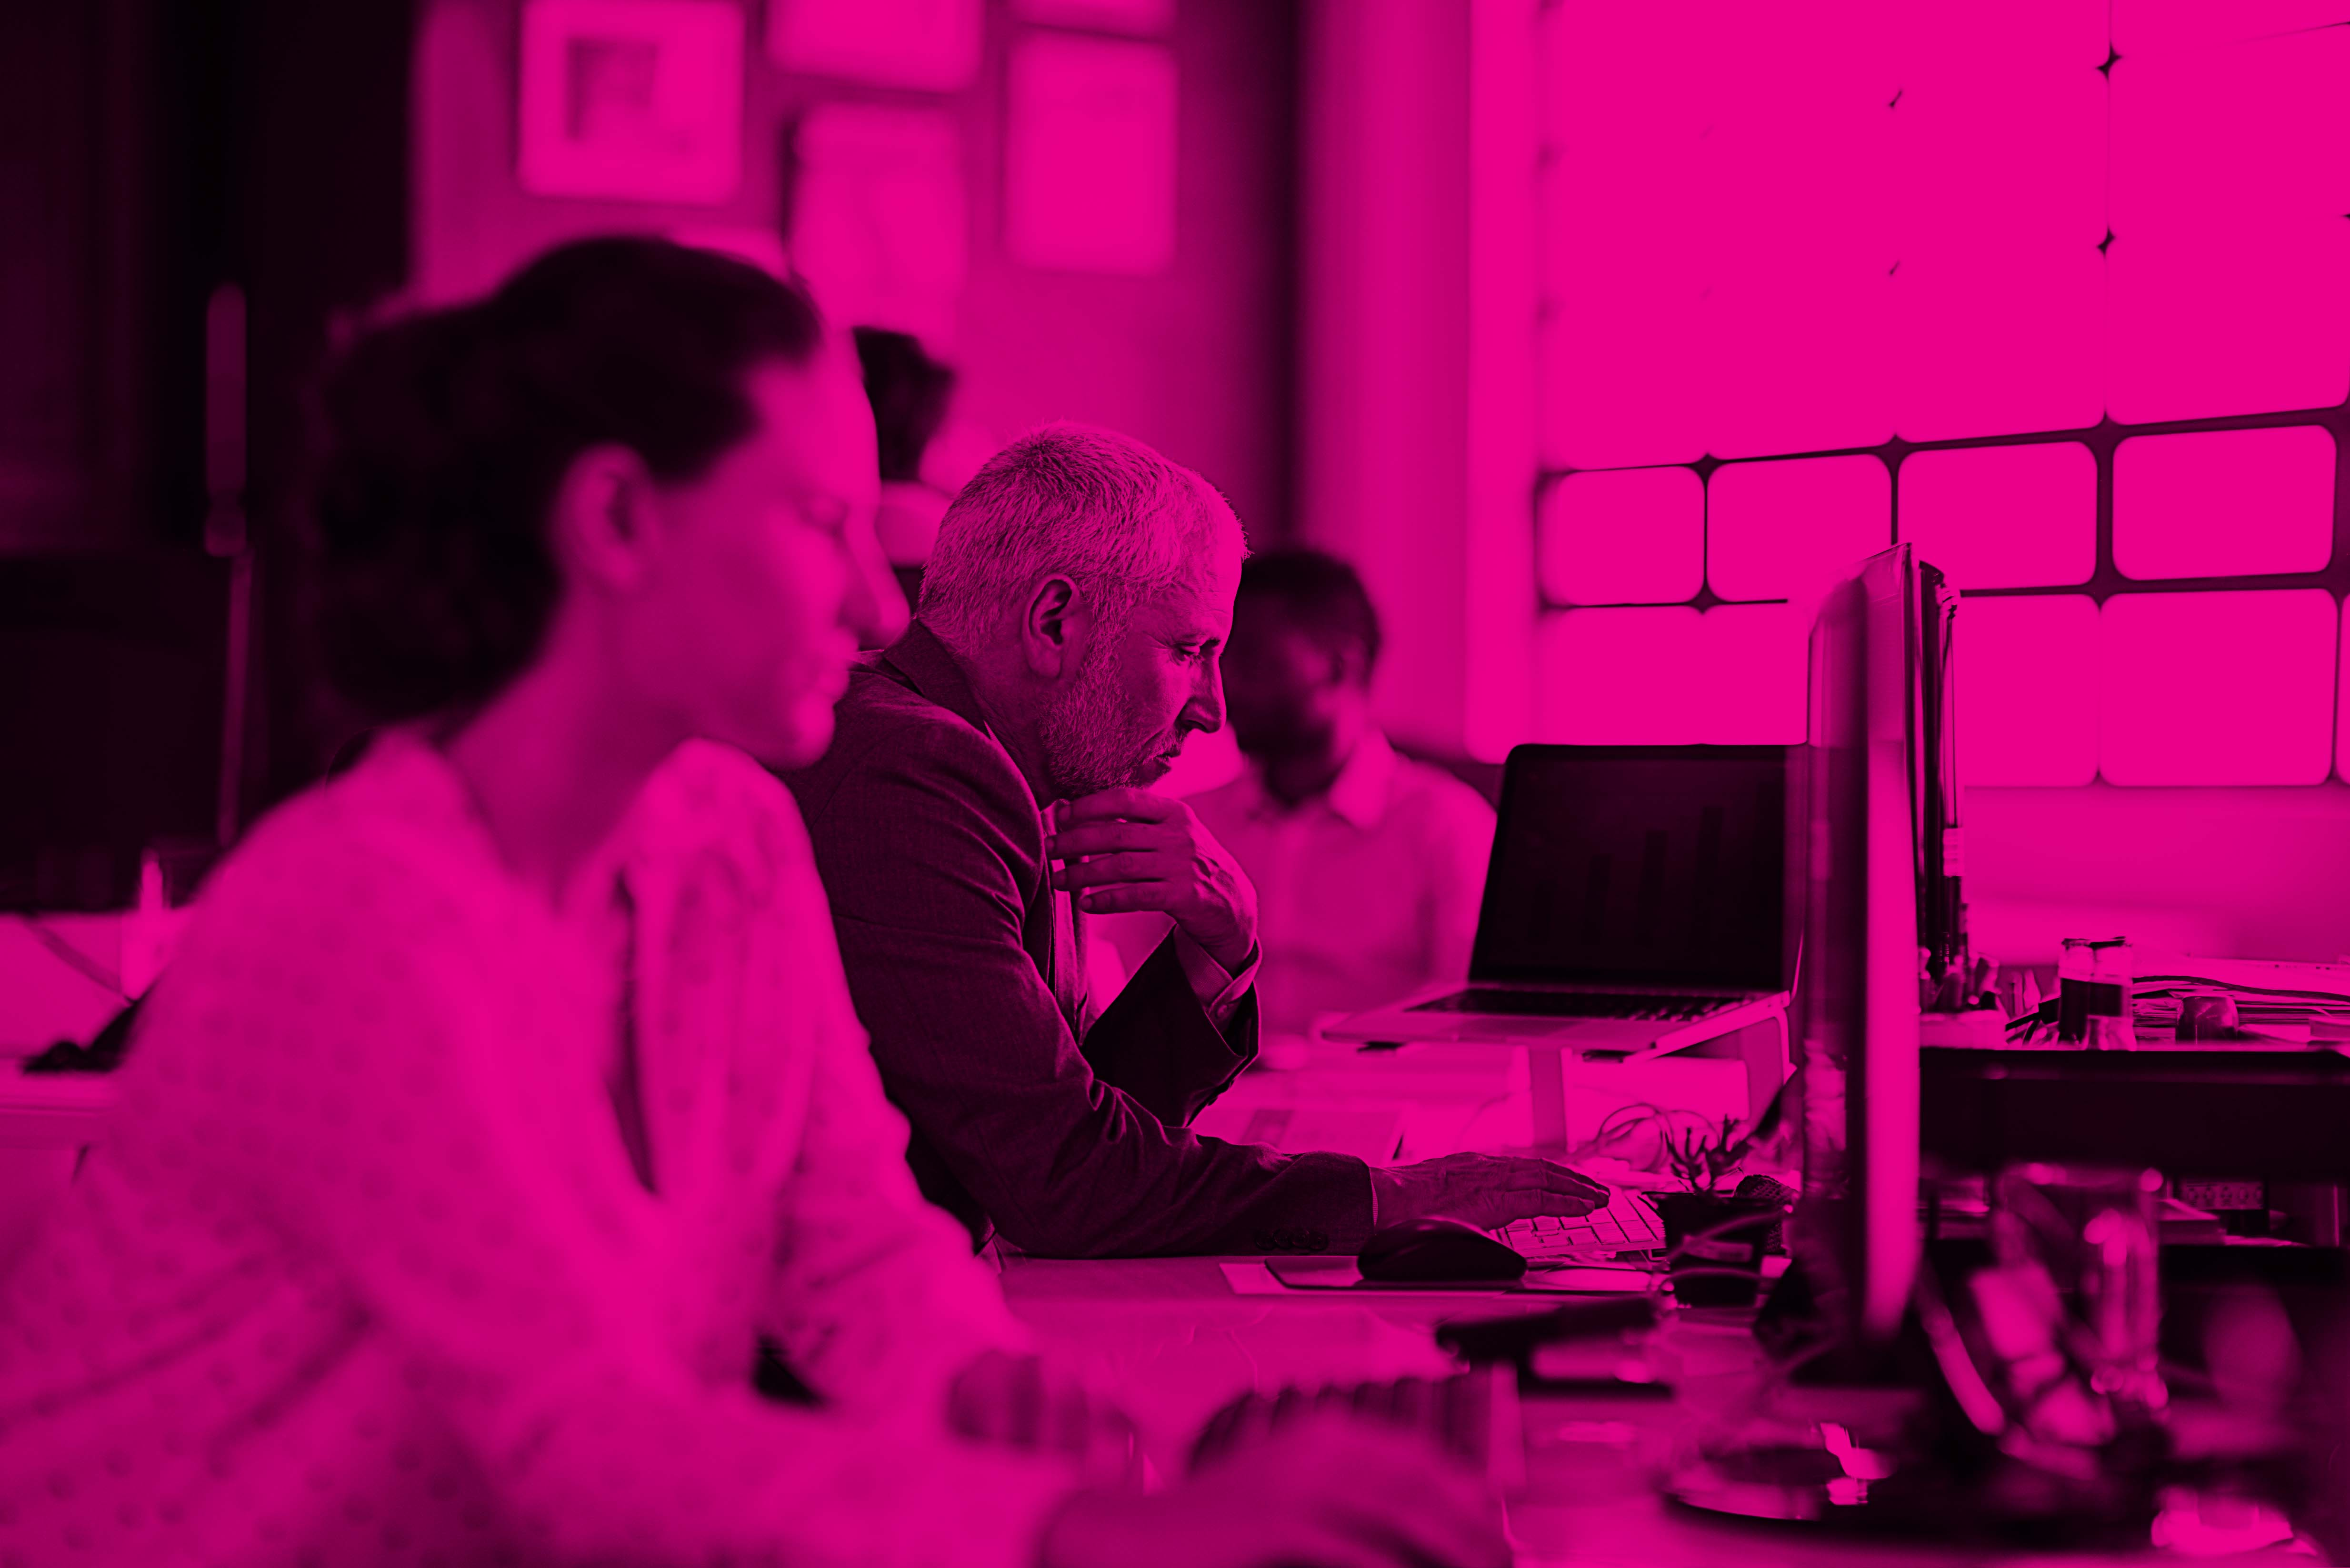 People_Computers_Sideview_Pink.jpg